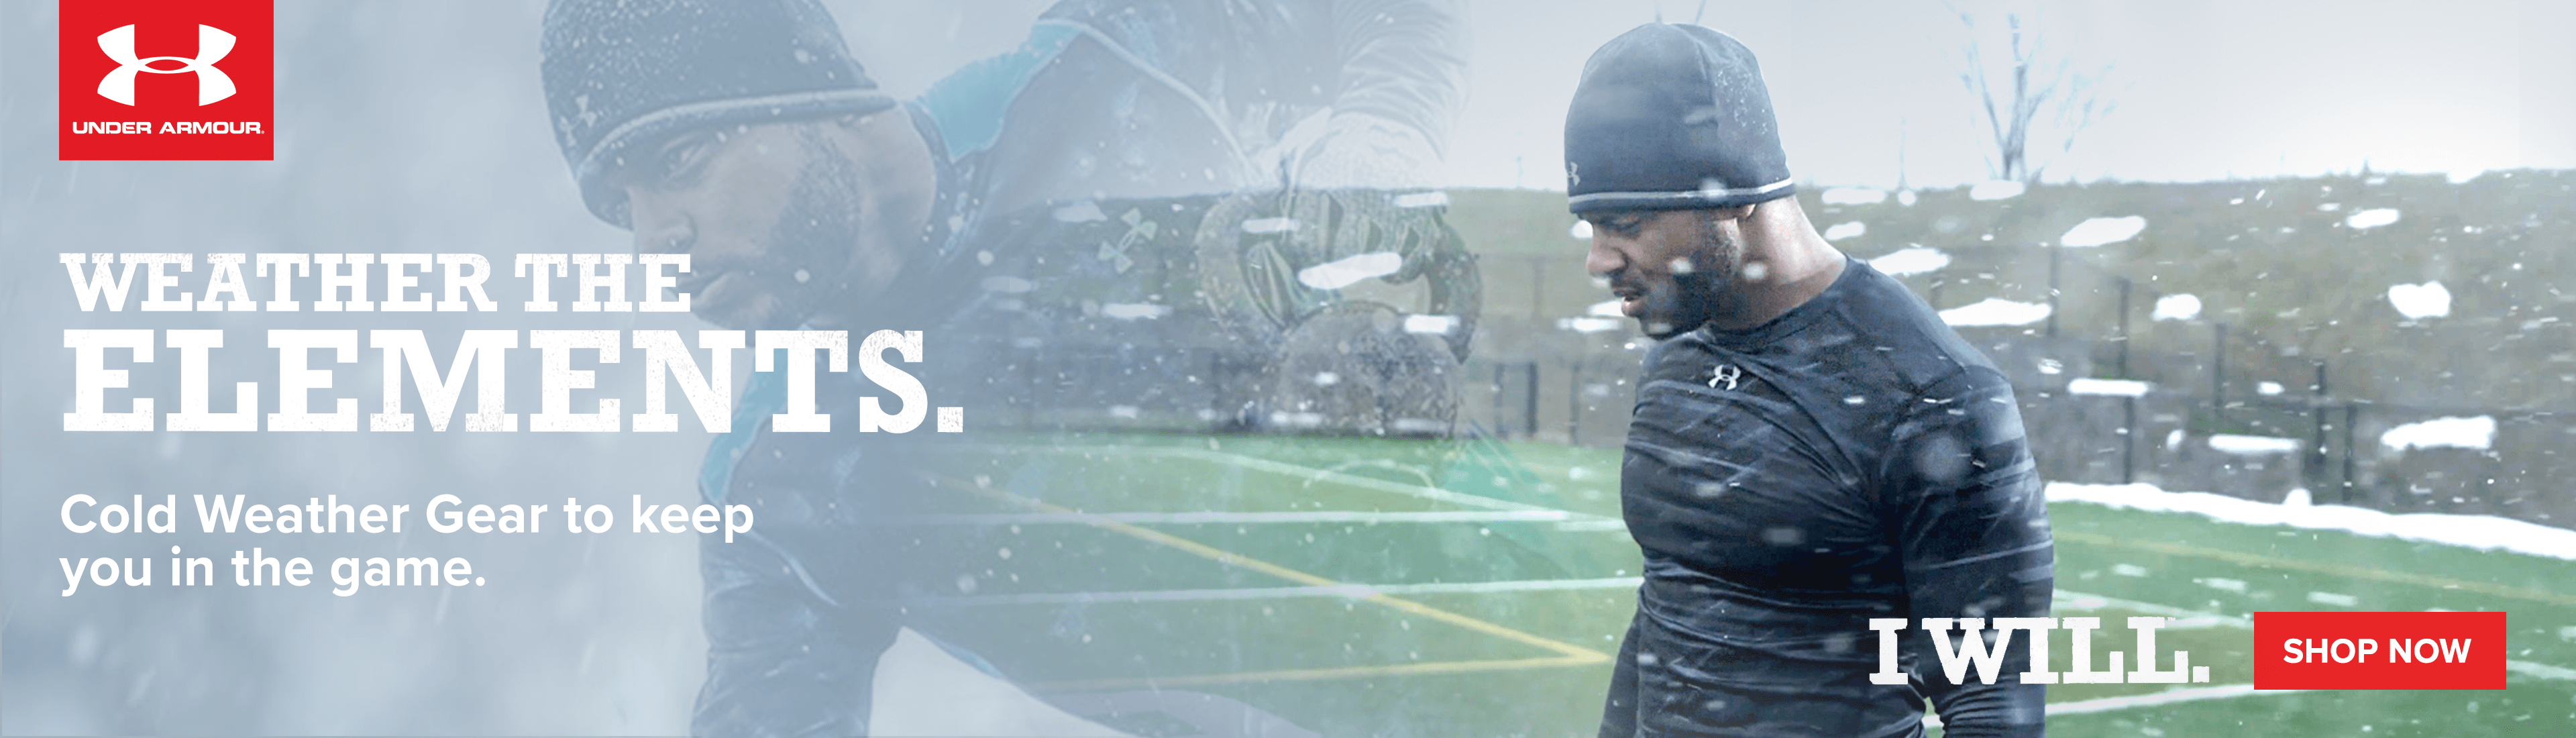 Cold Weather Gear | Kahunaverse Sports